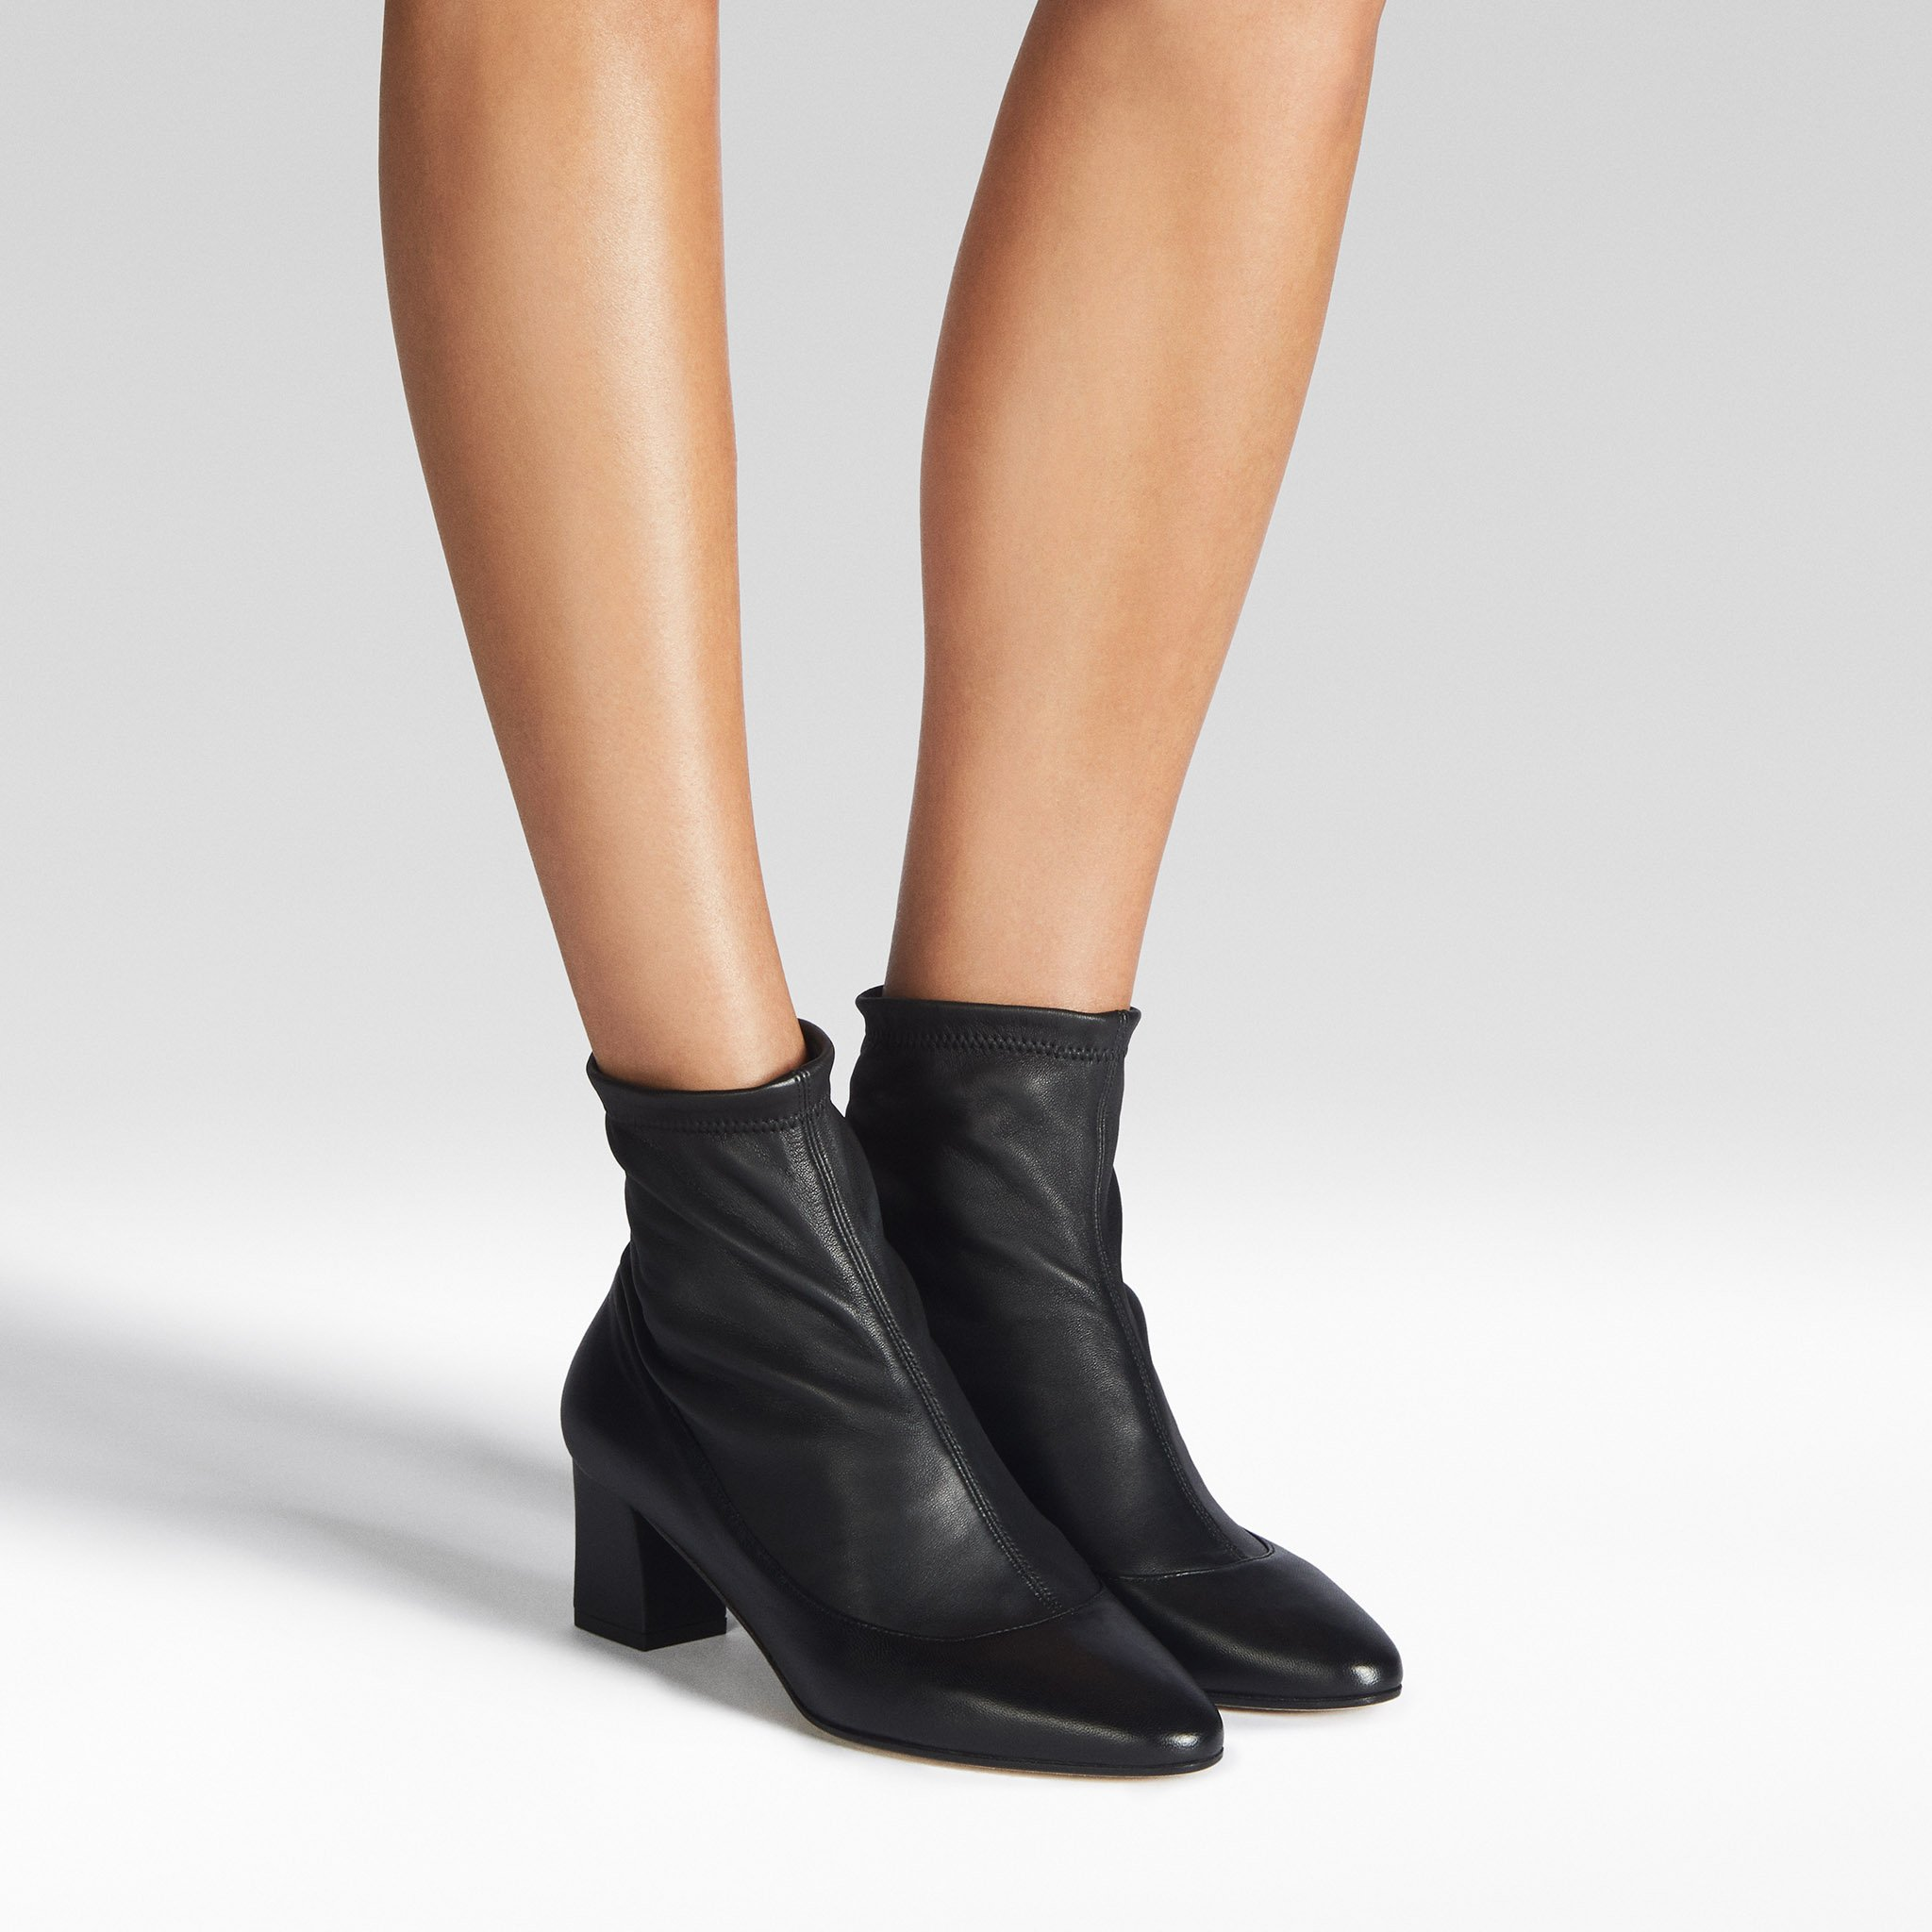 Tamara Mellon boots - caress stretch nappa leather boots